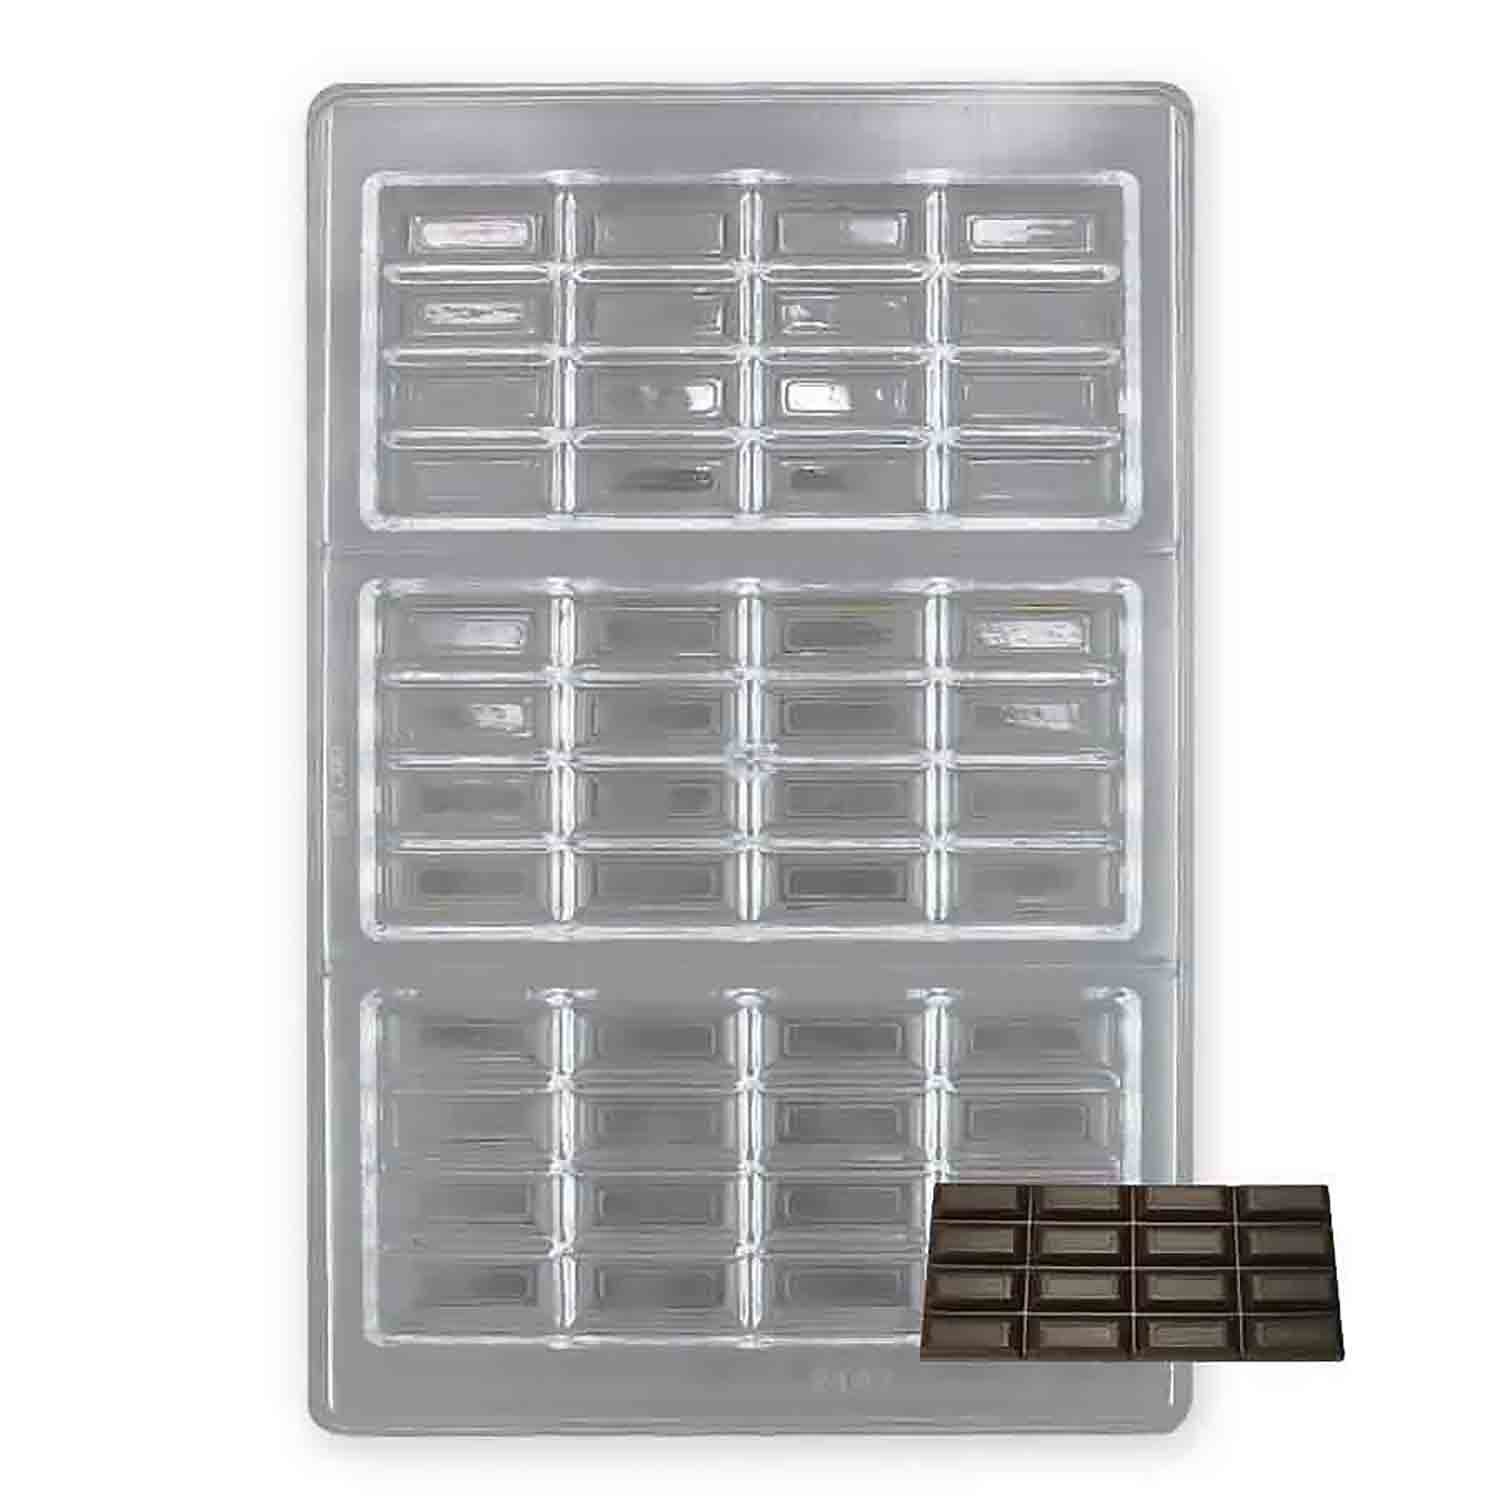 Large Break Away Polycarbonate Chocolate Candy Mold